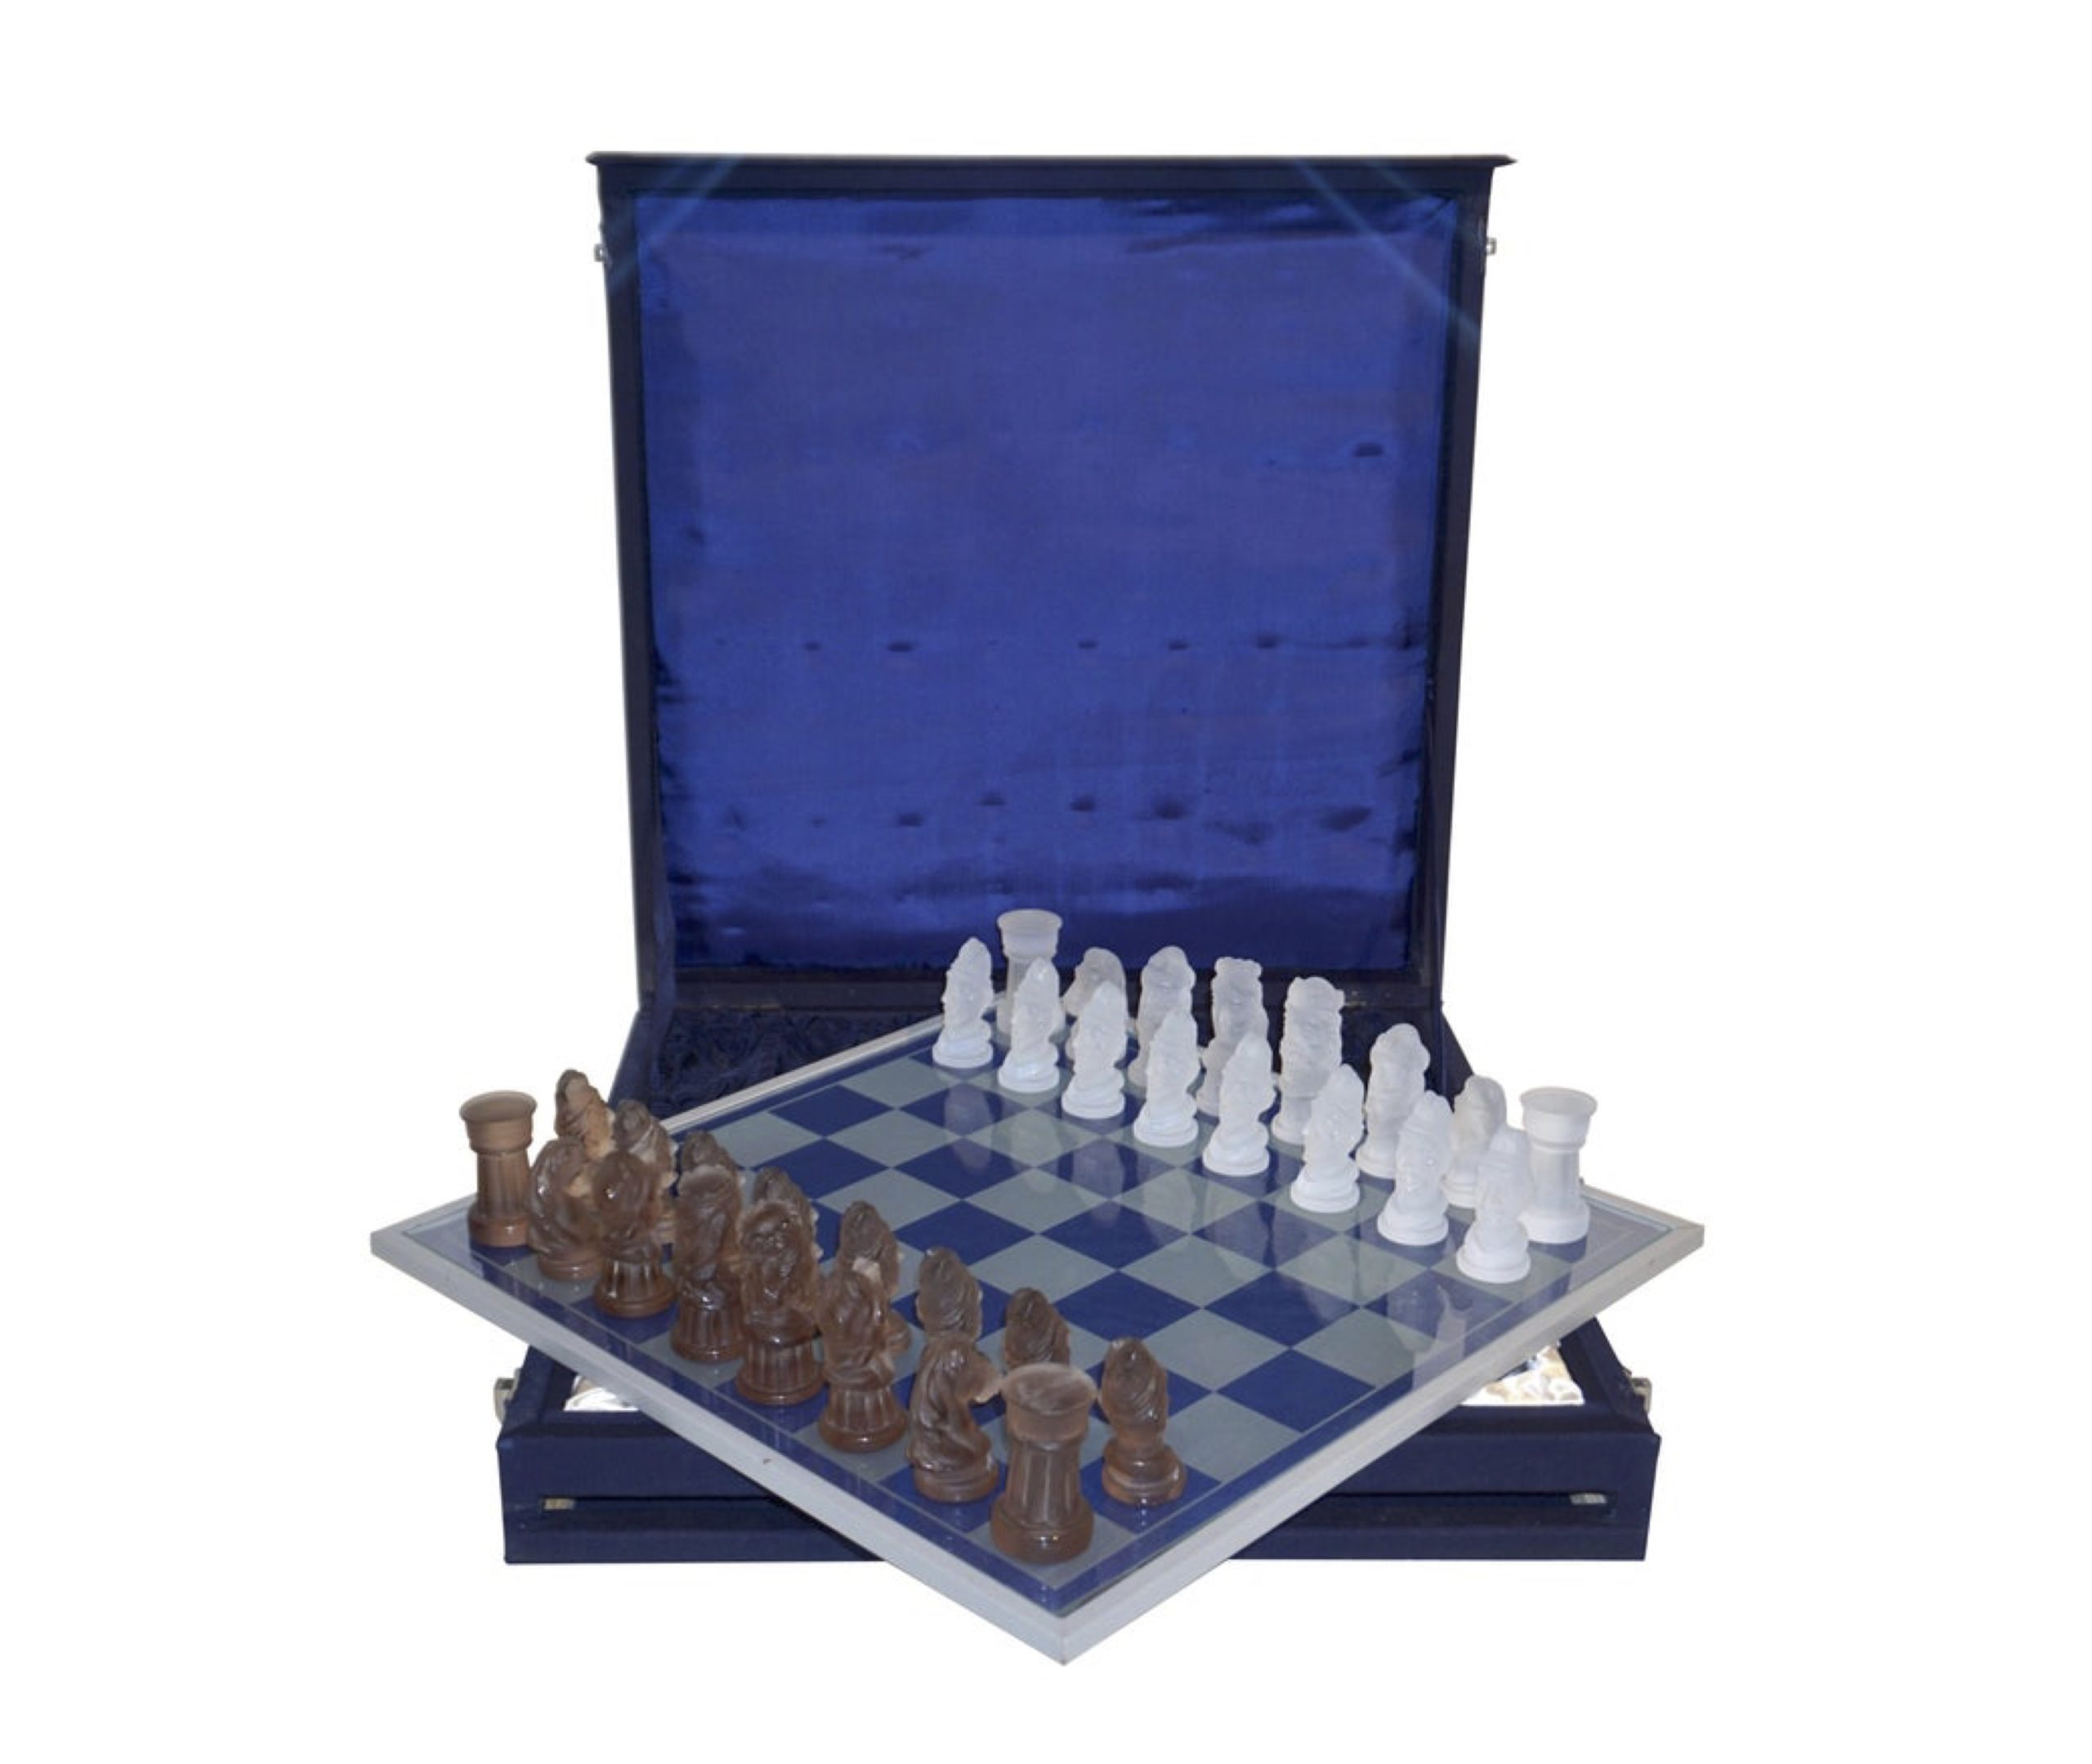 cosulich_interiors_and_antiques_products_new_york_design_center_1960s_vintage_white_bronze_color_bohemia_glass_czech_chess_set_blue_box-scaled-1